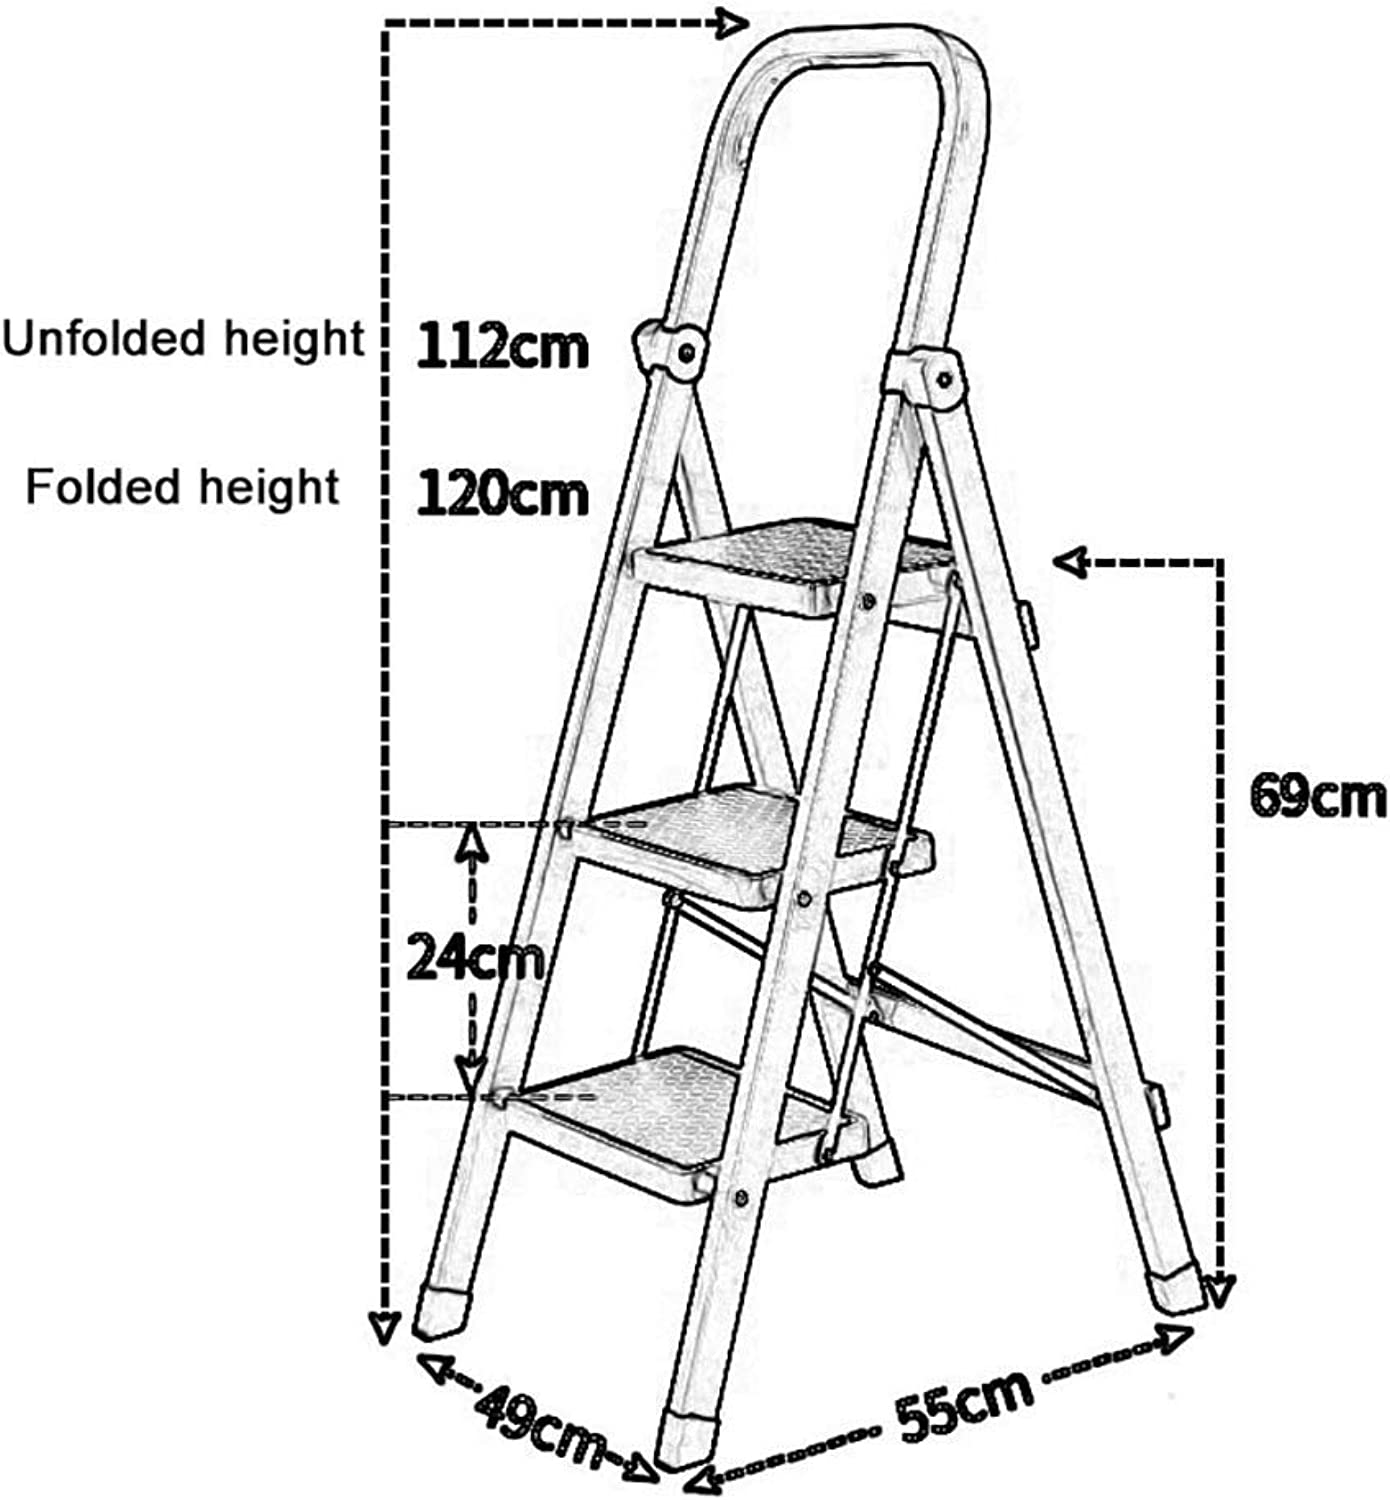 PLLP Household Step Stool, Photography Folding Step Stool, Step Stools Folding Step Stool for 330Lbs Load, Home Office 3 Step Ladder for Adult Seniors, Lightweight White Ladder with Hand Grip & Wide